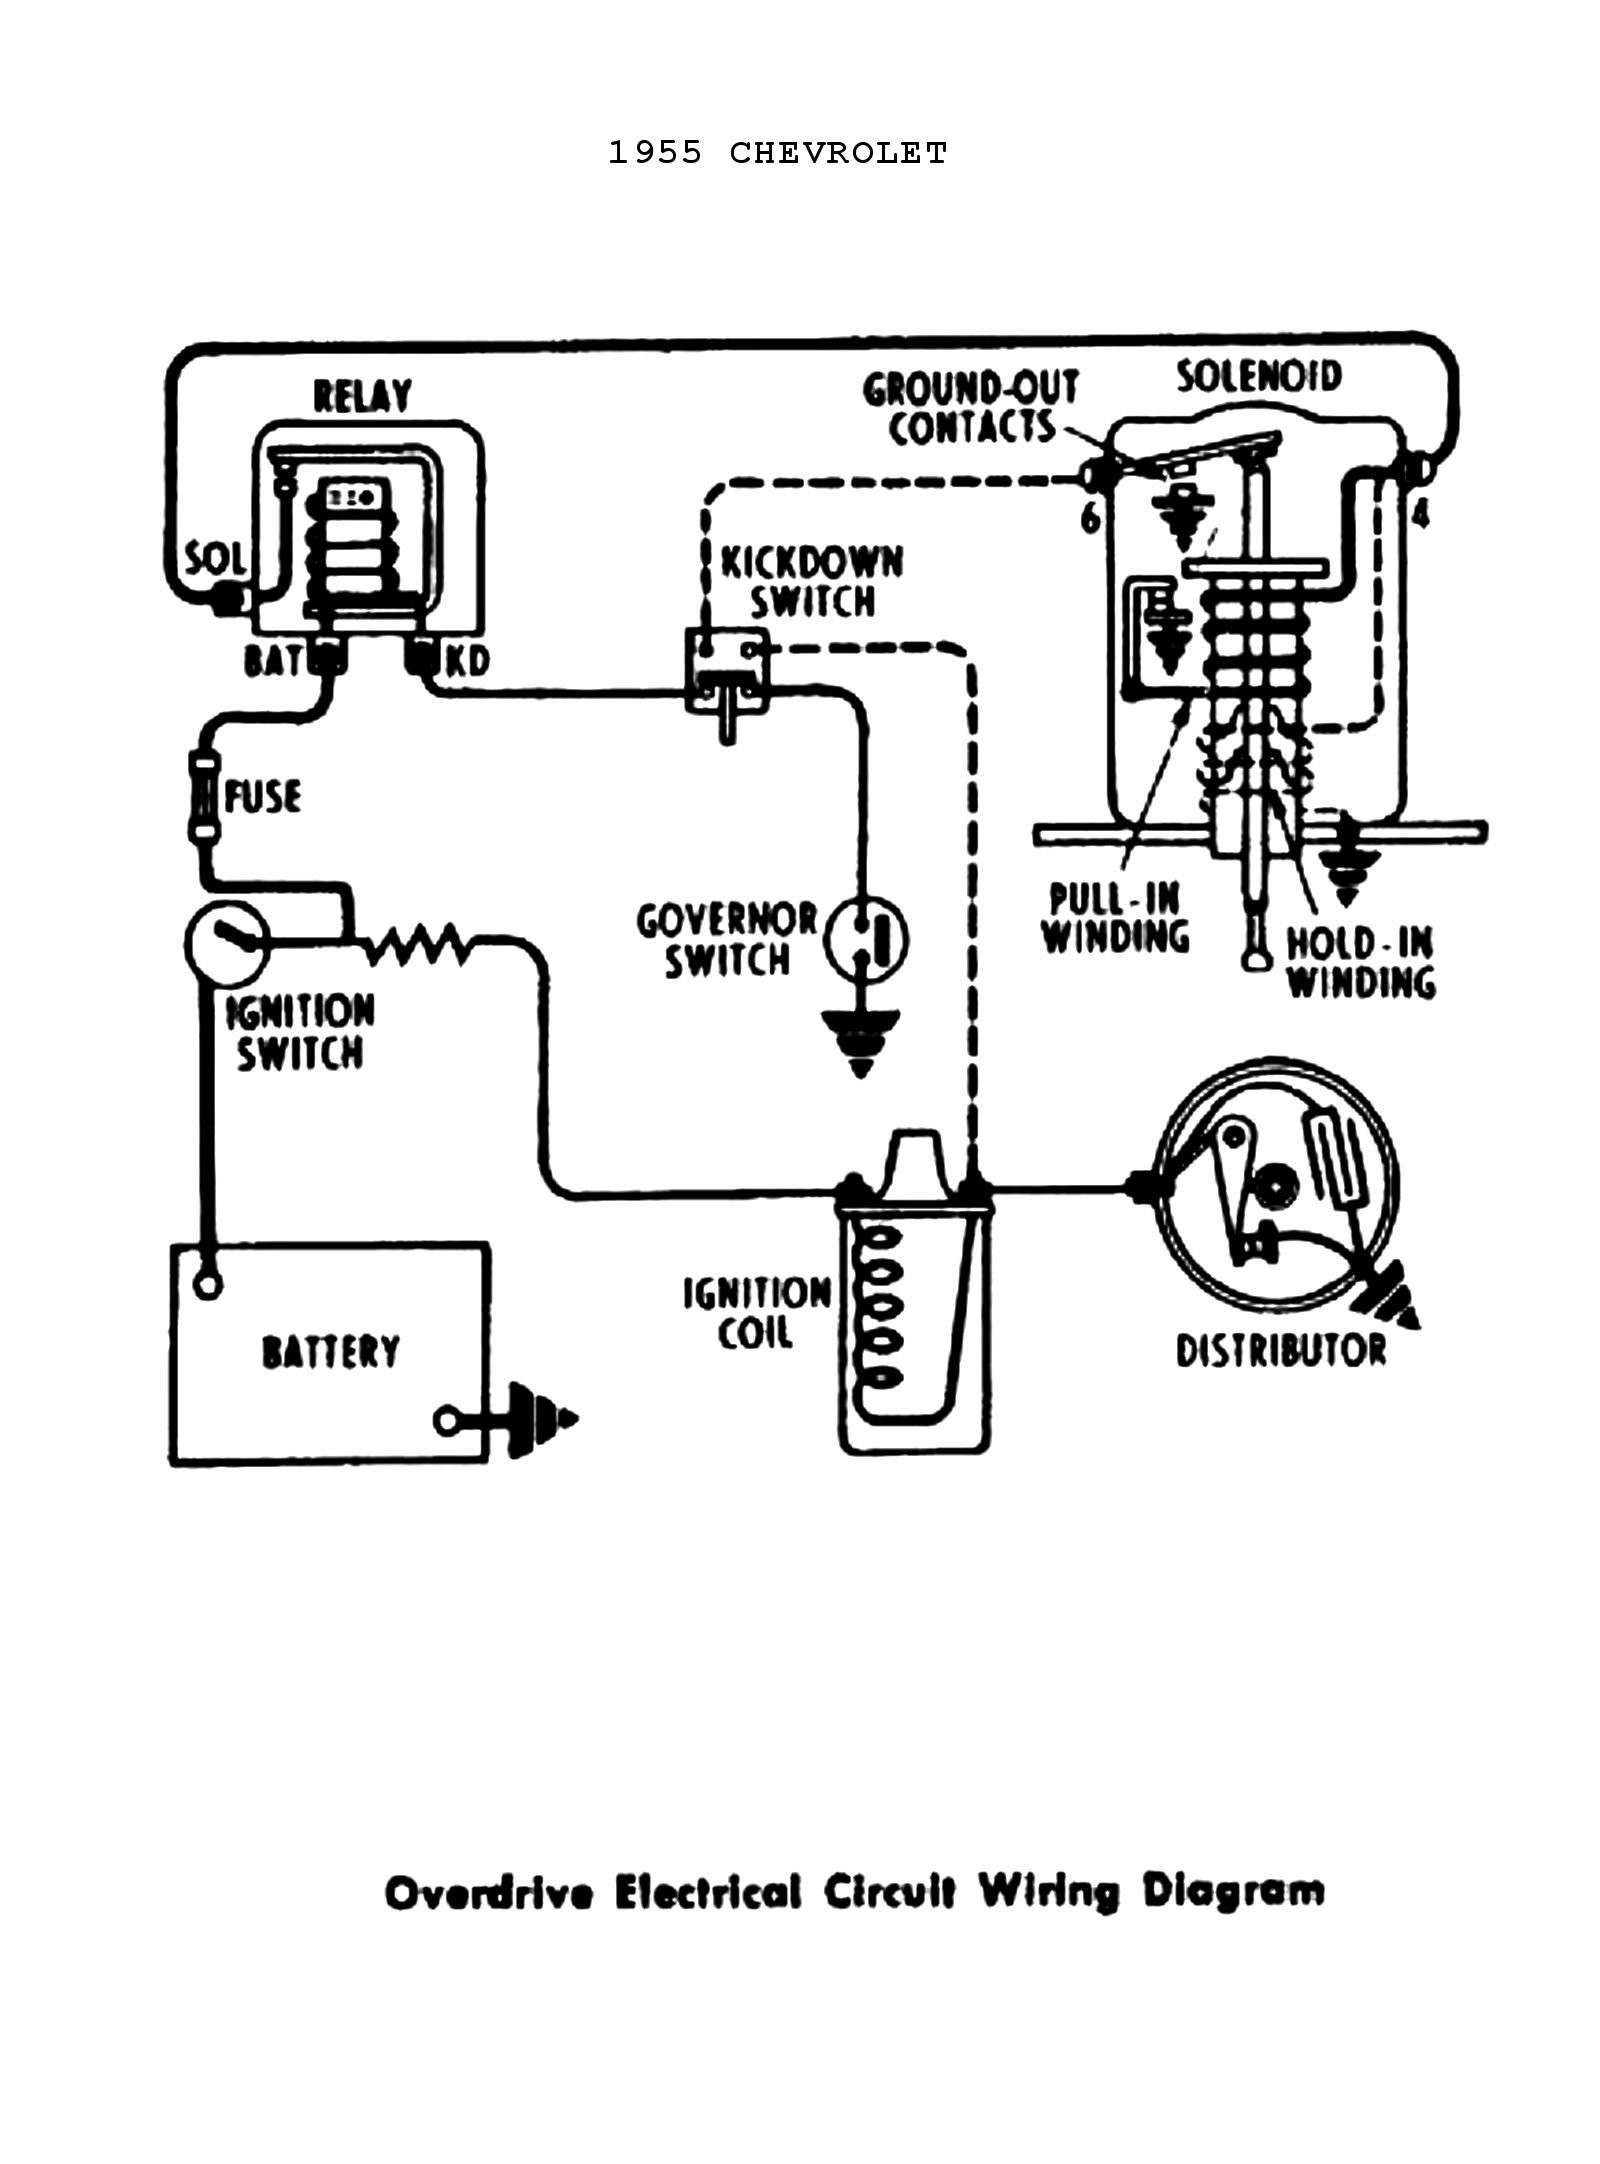 Universal Power Window Wiring Diagram Wiring Diagram for Gm Ignition Switch Wiring Diagram Rows Of Universal Power Window Wiring Diagram